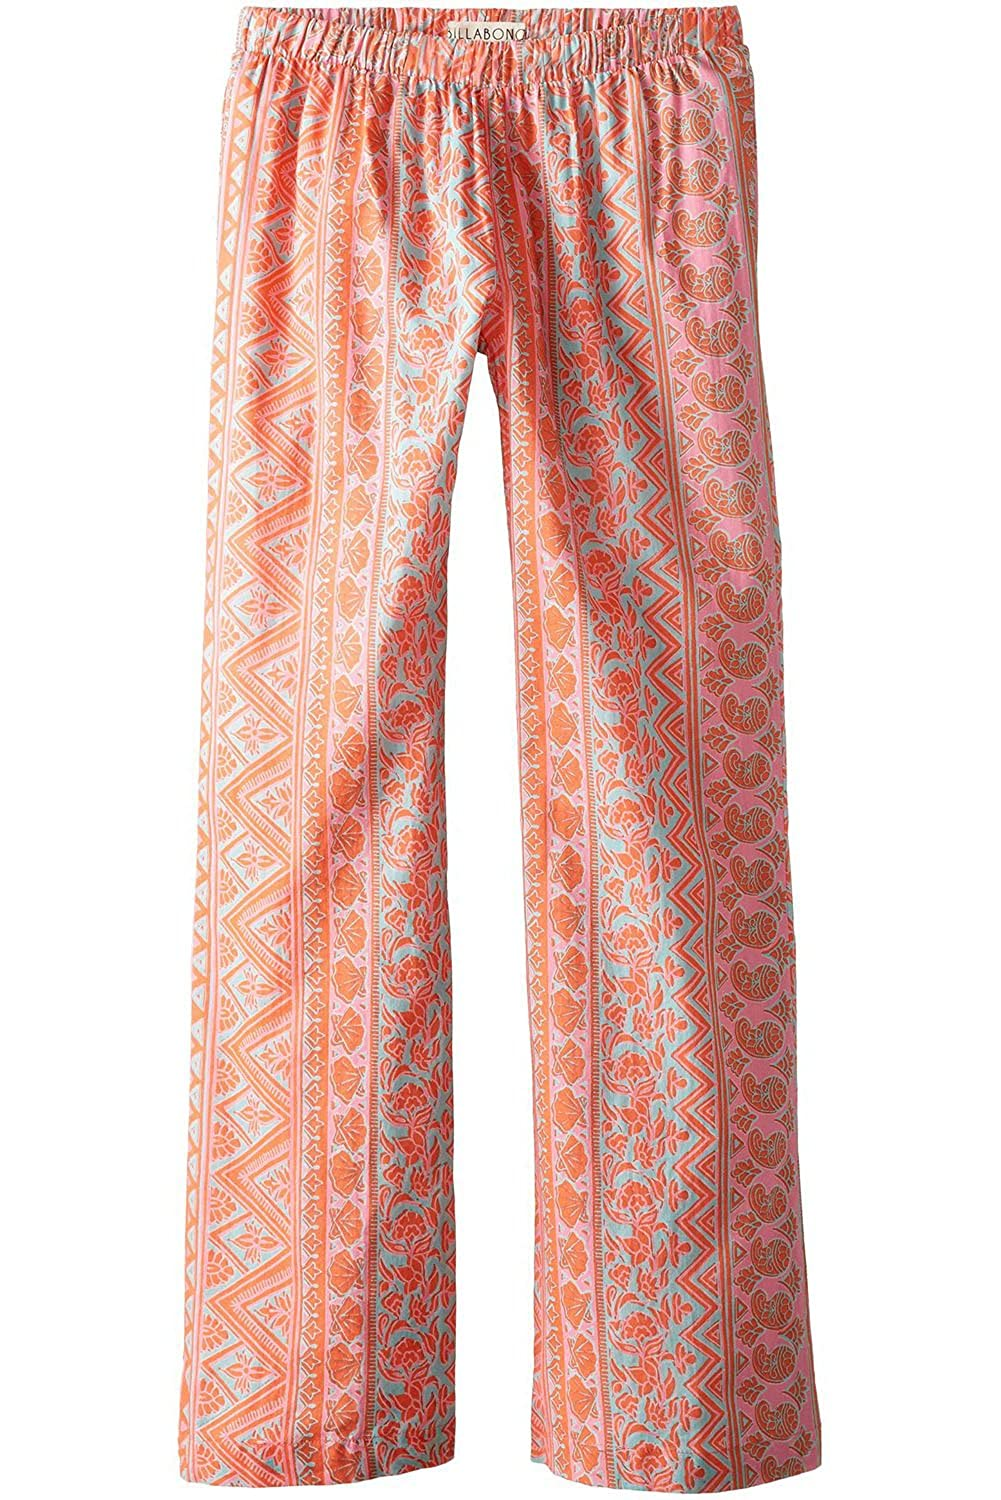 Billabong Girls Groovy Sea RIR Pant (US Girls XS 6/6X)